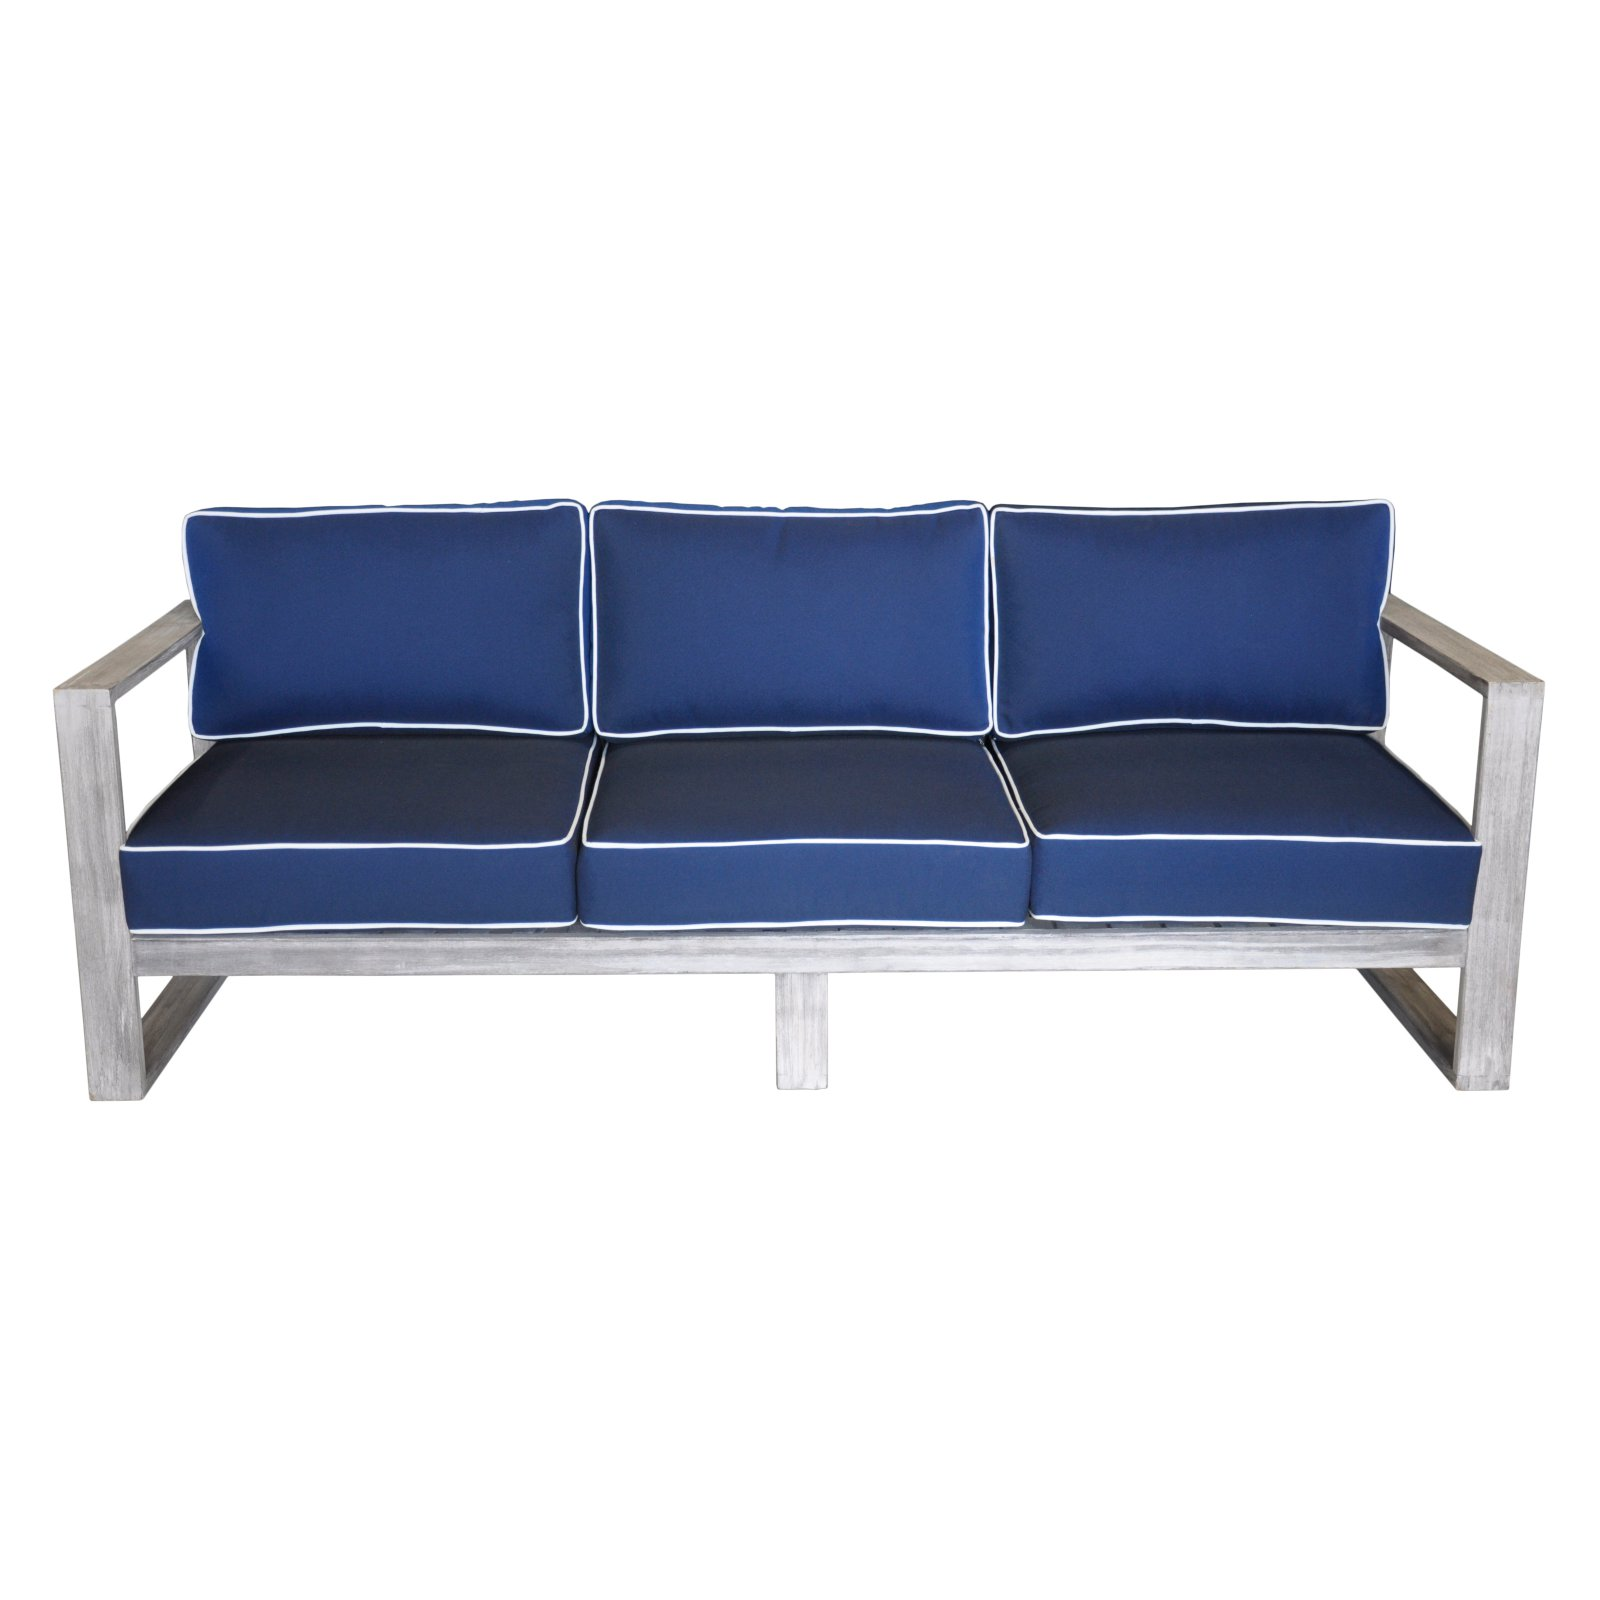 Courtyard Casual Driftwood Gray Teak Modern North Shore Outdoor Three Seater Sofa with Cushions by Courtyard Casual